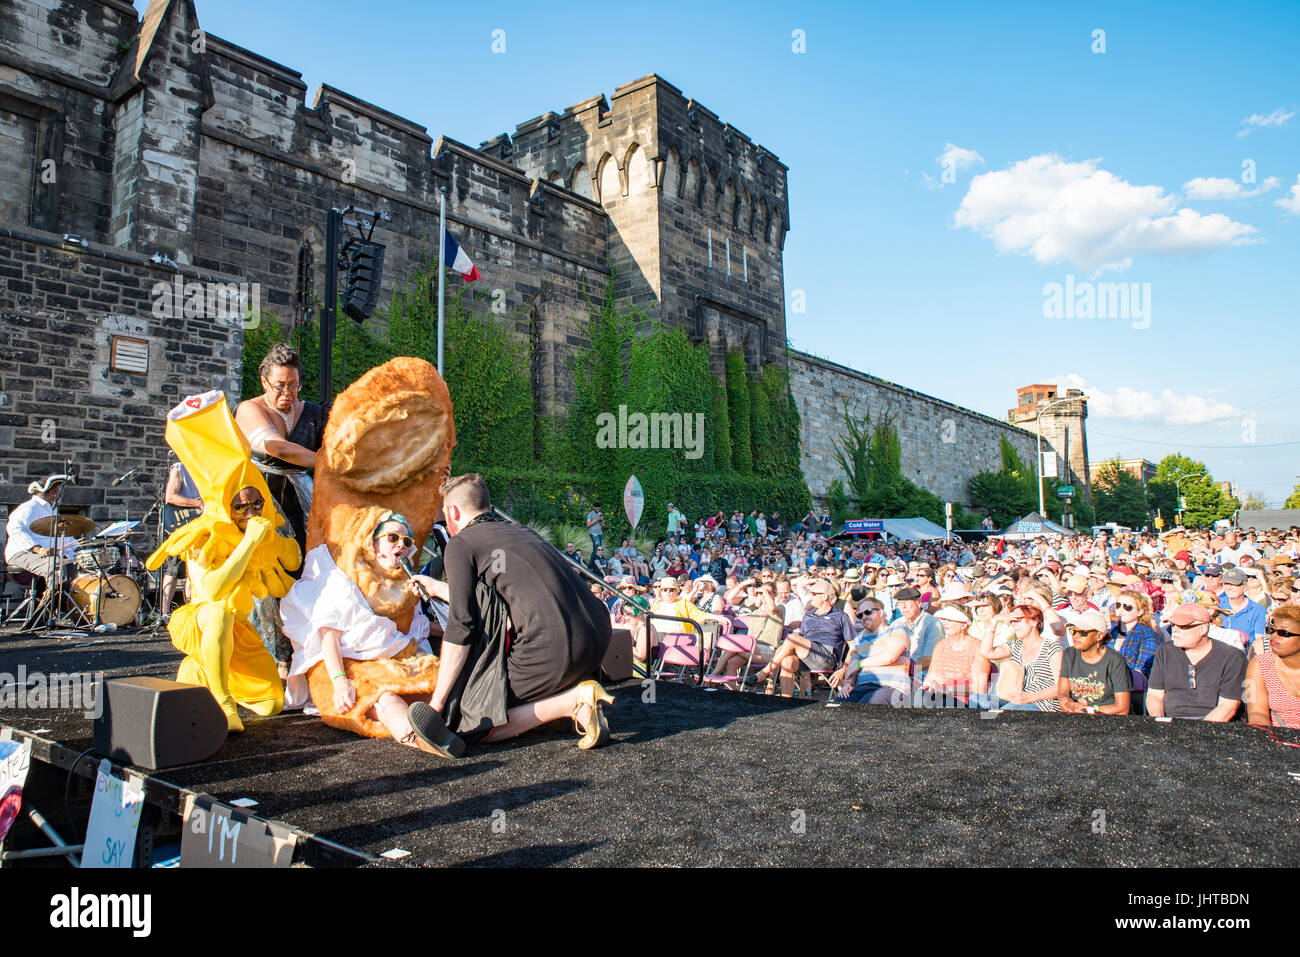 Philadelphia, USA. 15th July, 2017. Bread is dead during the Bastille Day Cabaret. Credit: Christopher Evens/Alamy - Stock Image